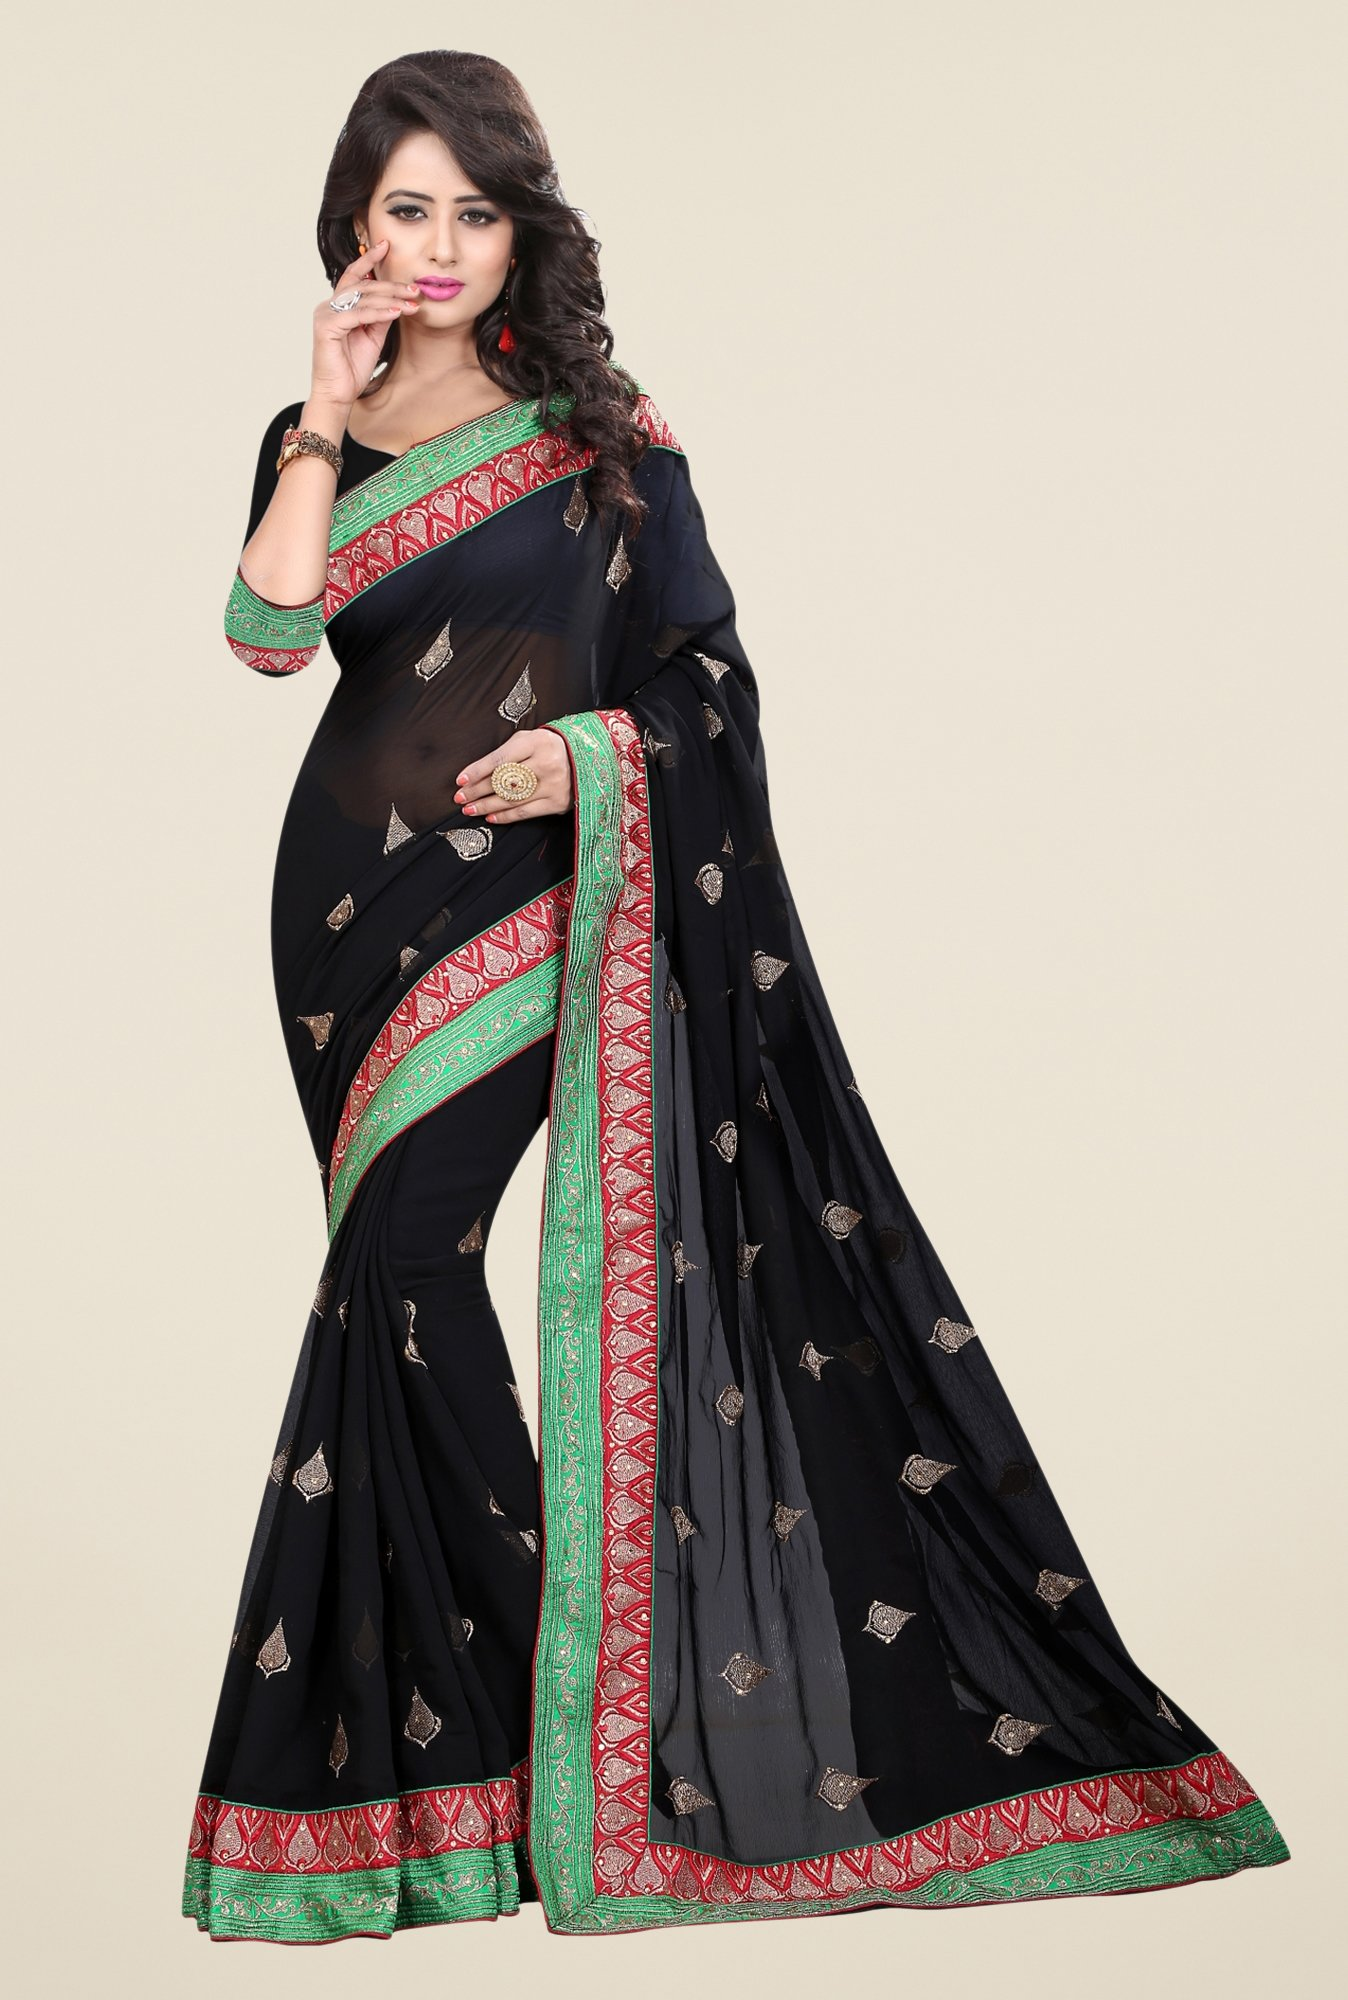 Triveni Black Embroidered Chiffon Saree